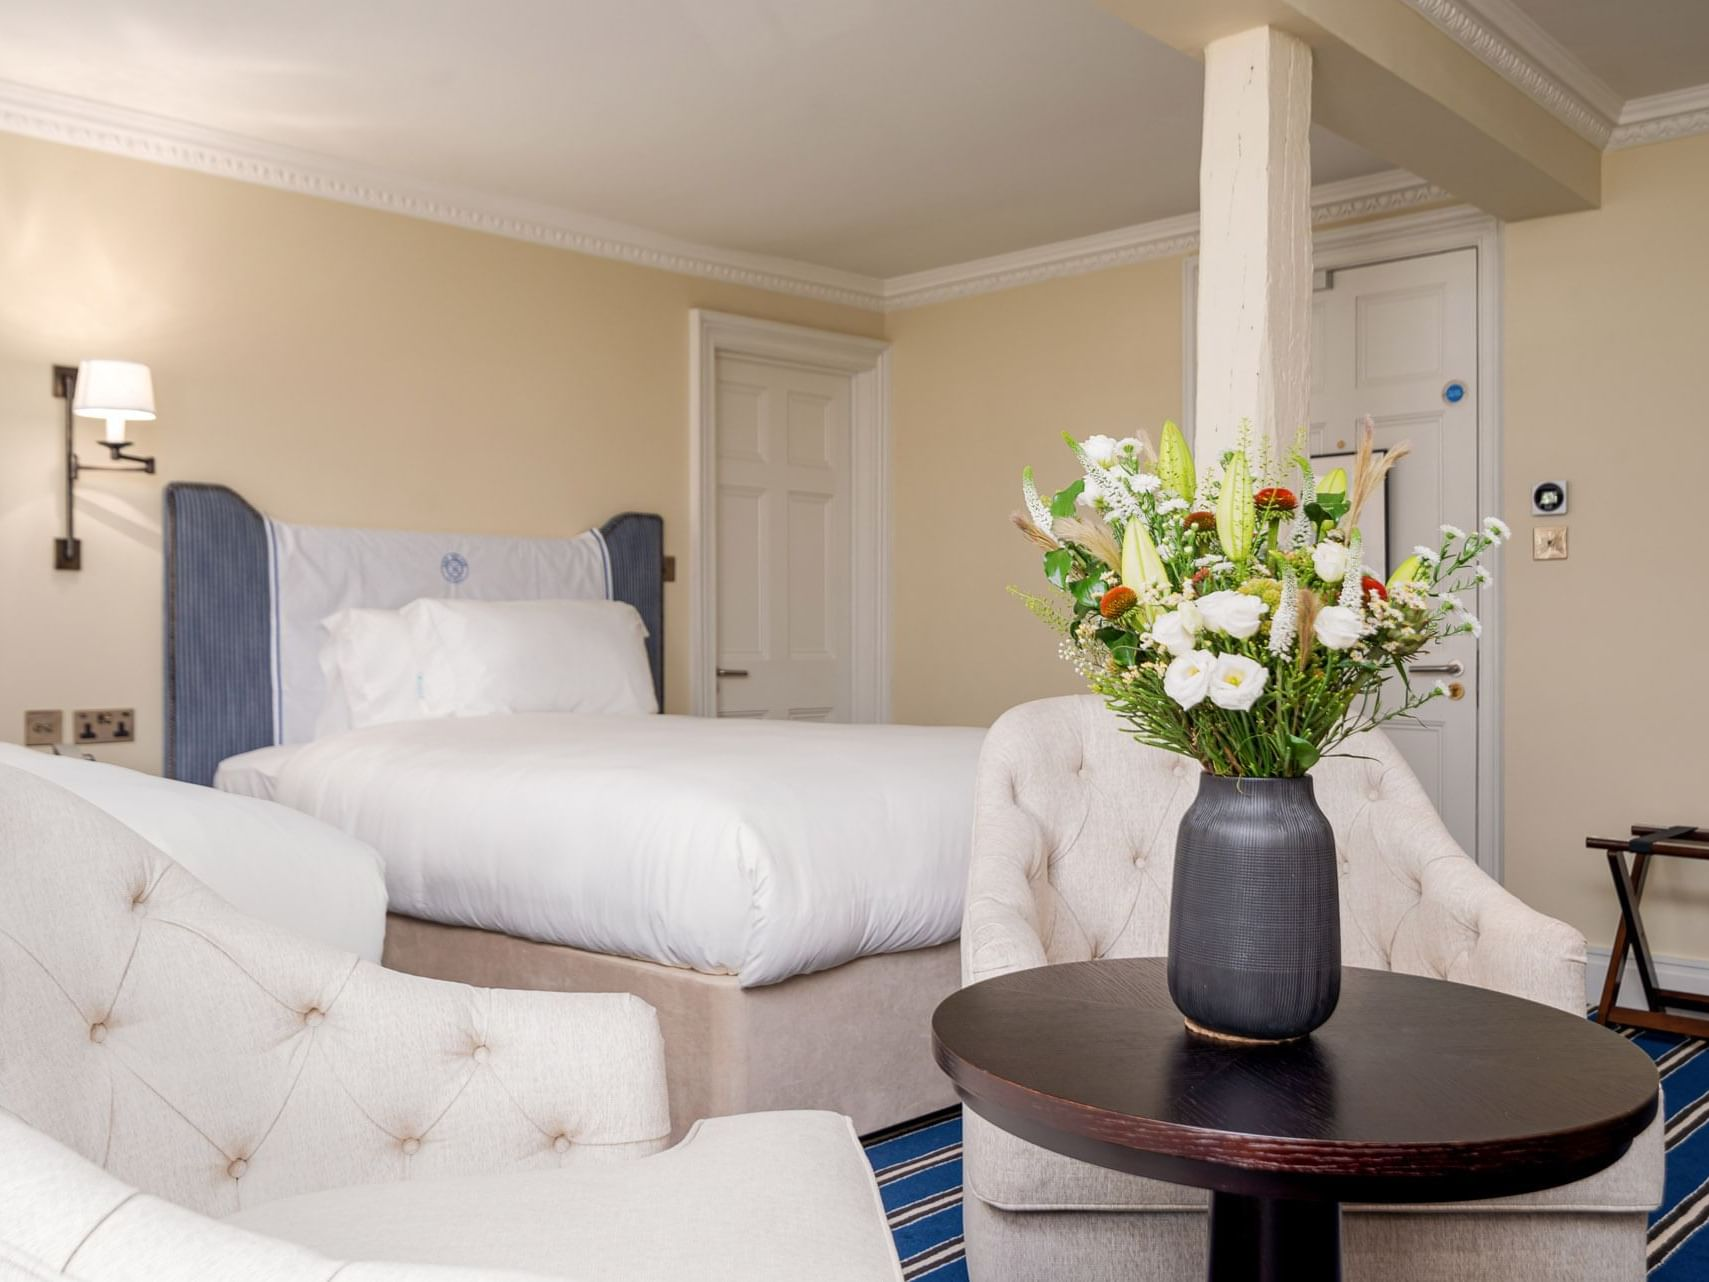 Interior of Riverside Twin Room at The Relais Henley